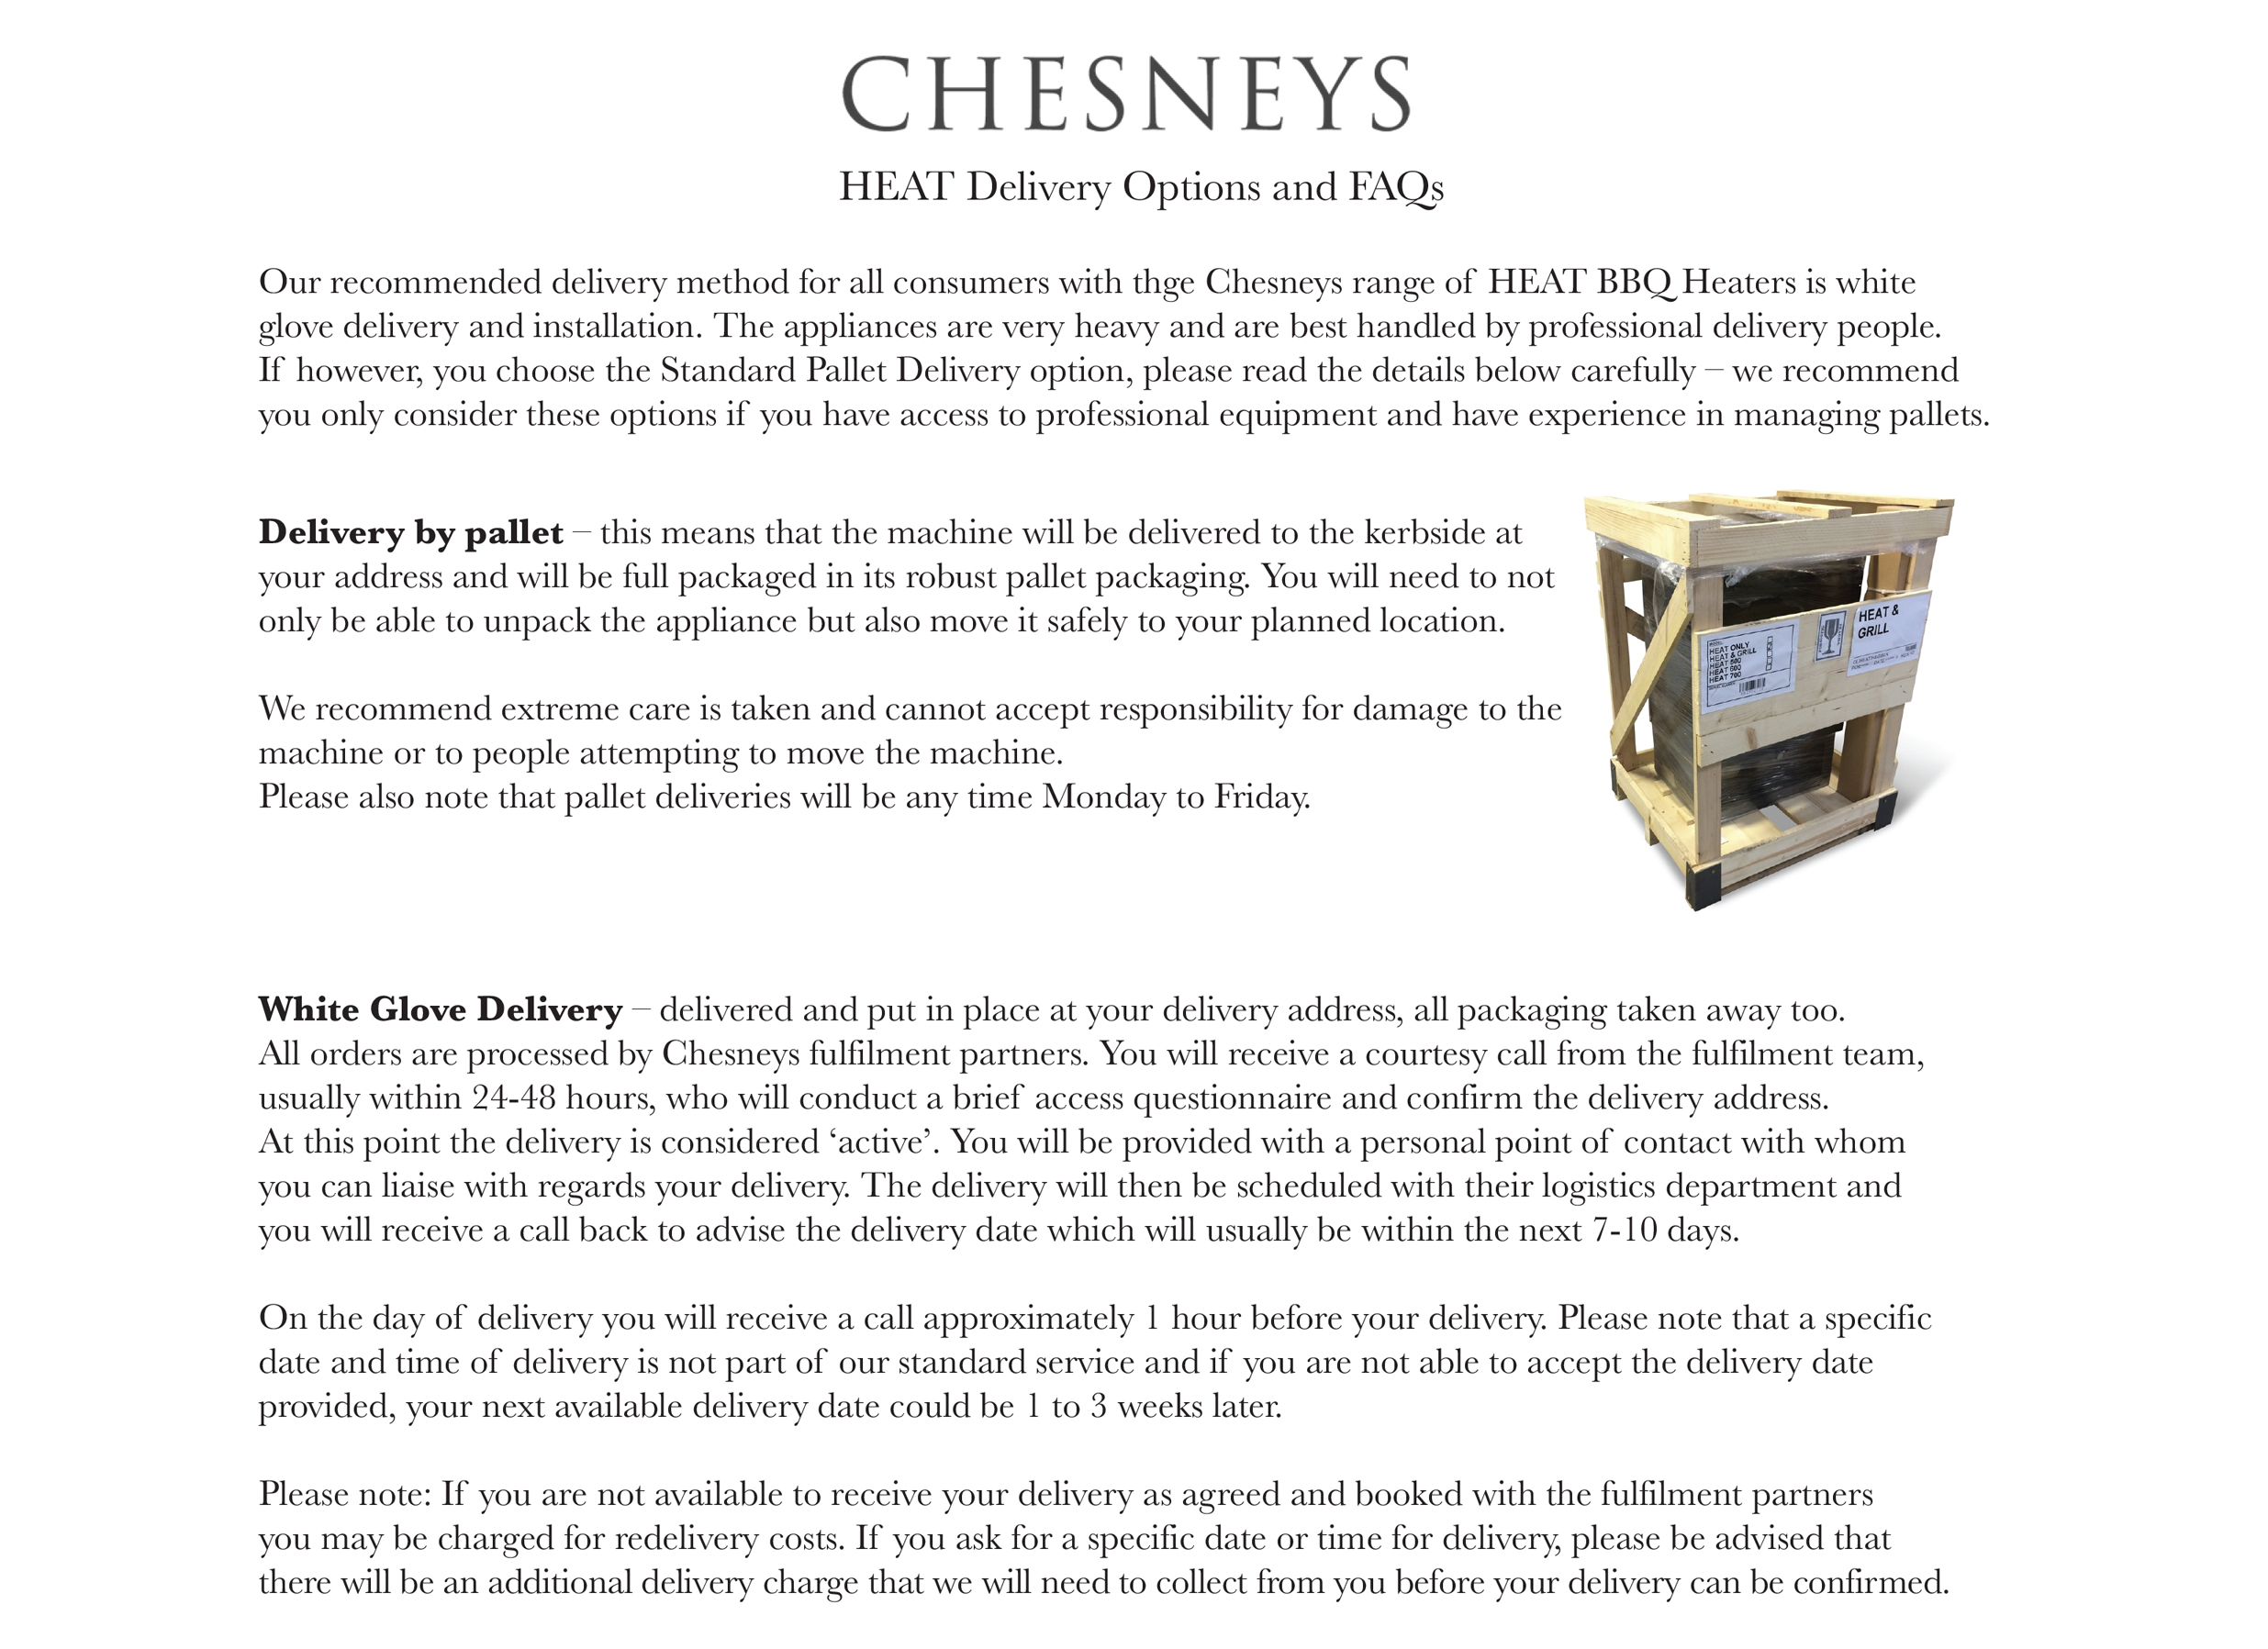 Chesneys HEAT BBQ Heater Delivery Information